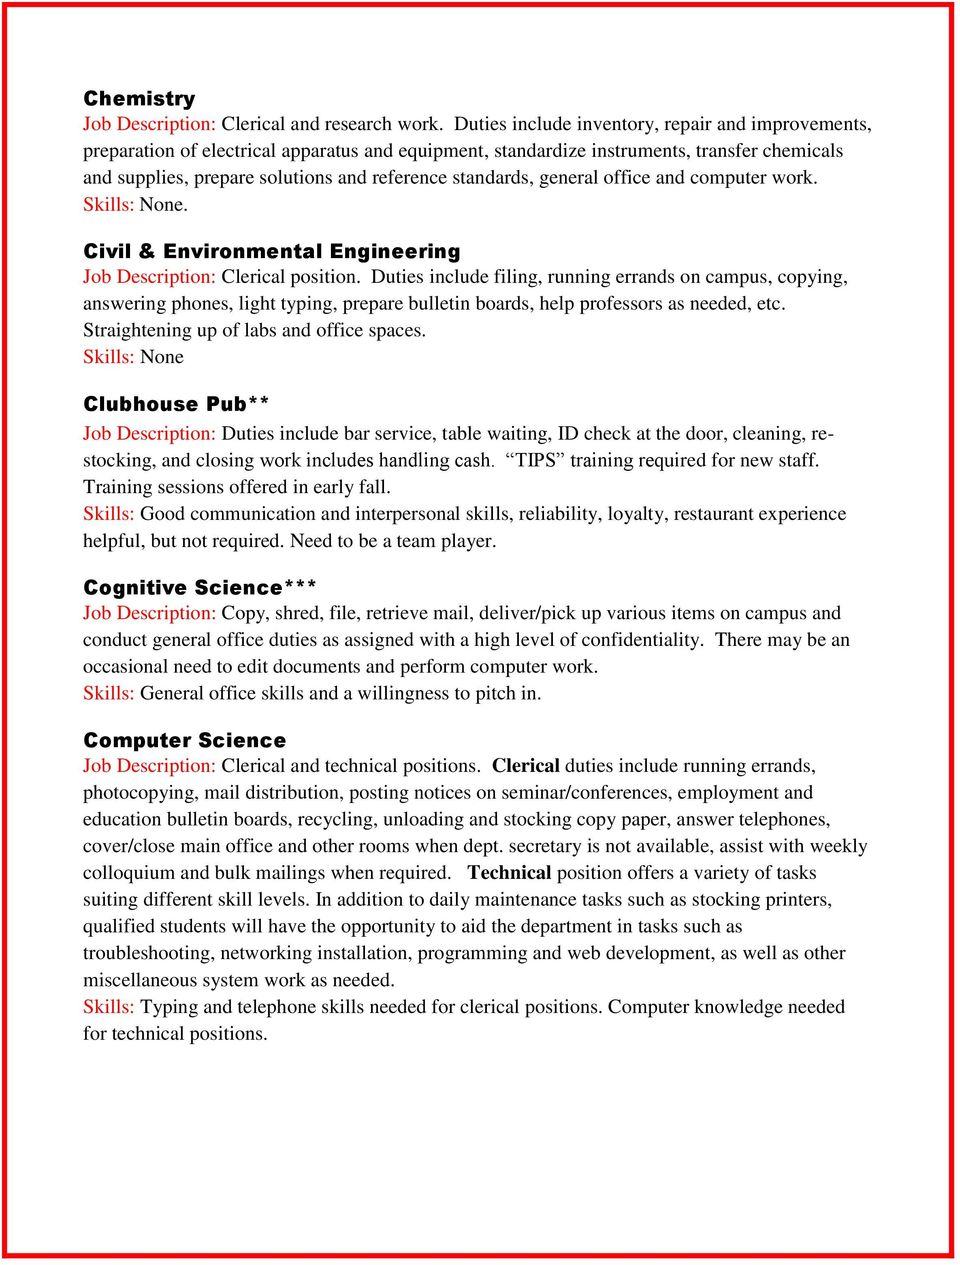 standards, general office and computer work.. Civil & Environmental Engineering Job Description: Clerical position.